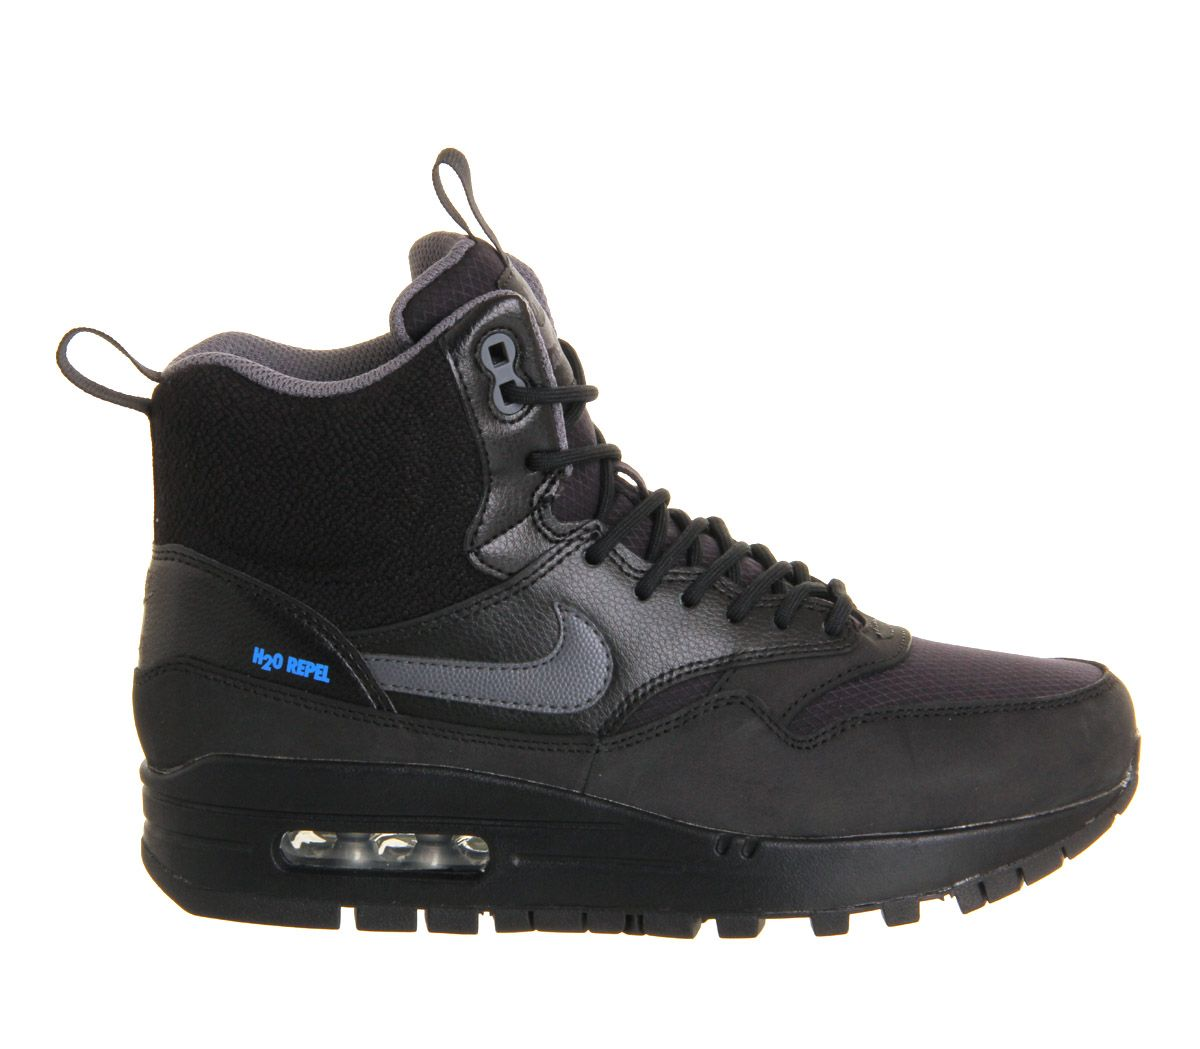 huge discount a3991 4be05 Nike Air Max 1 Mid Sneakerboot Wmns Black Metallic Silver - Hers trainers